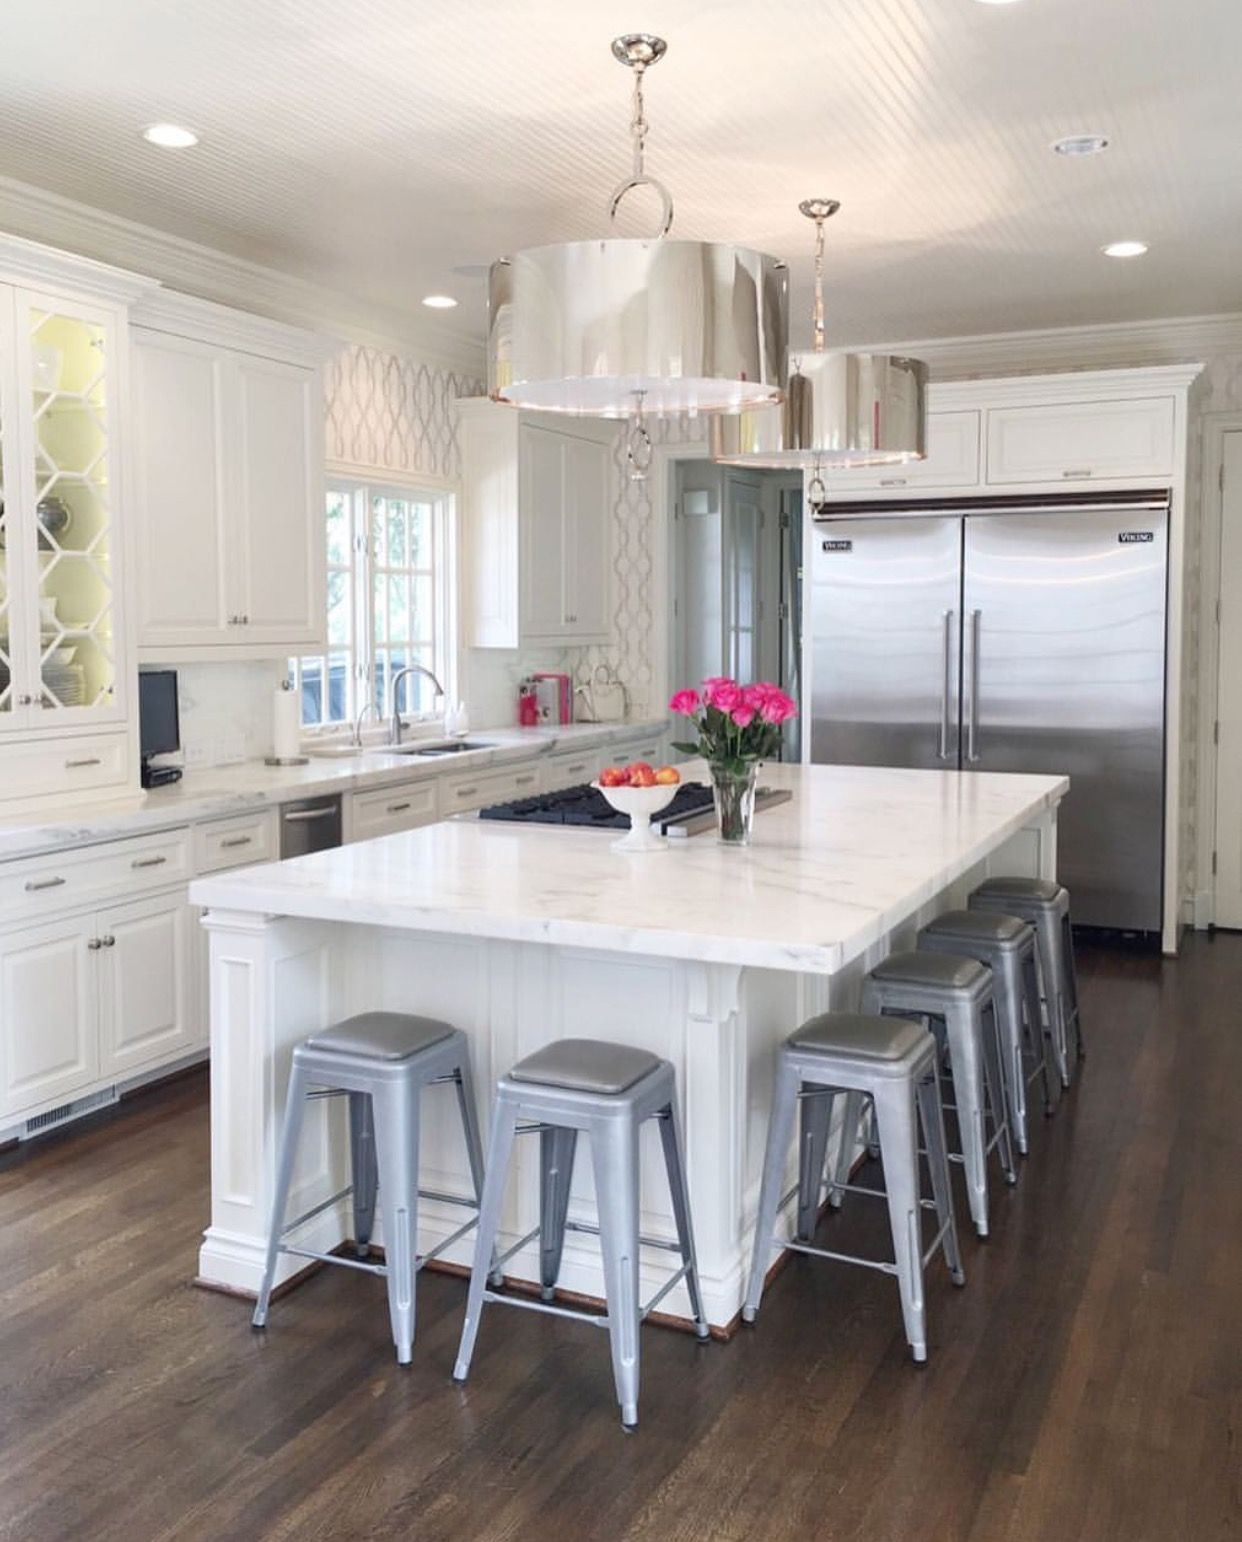 Island Seating On Corner No Support Kitchen Island With Seating